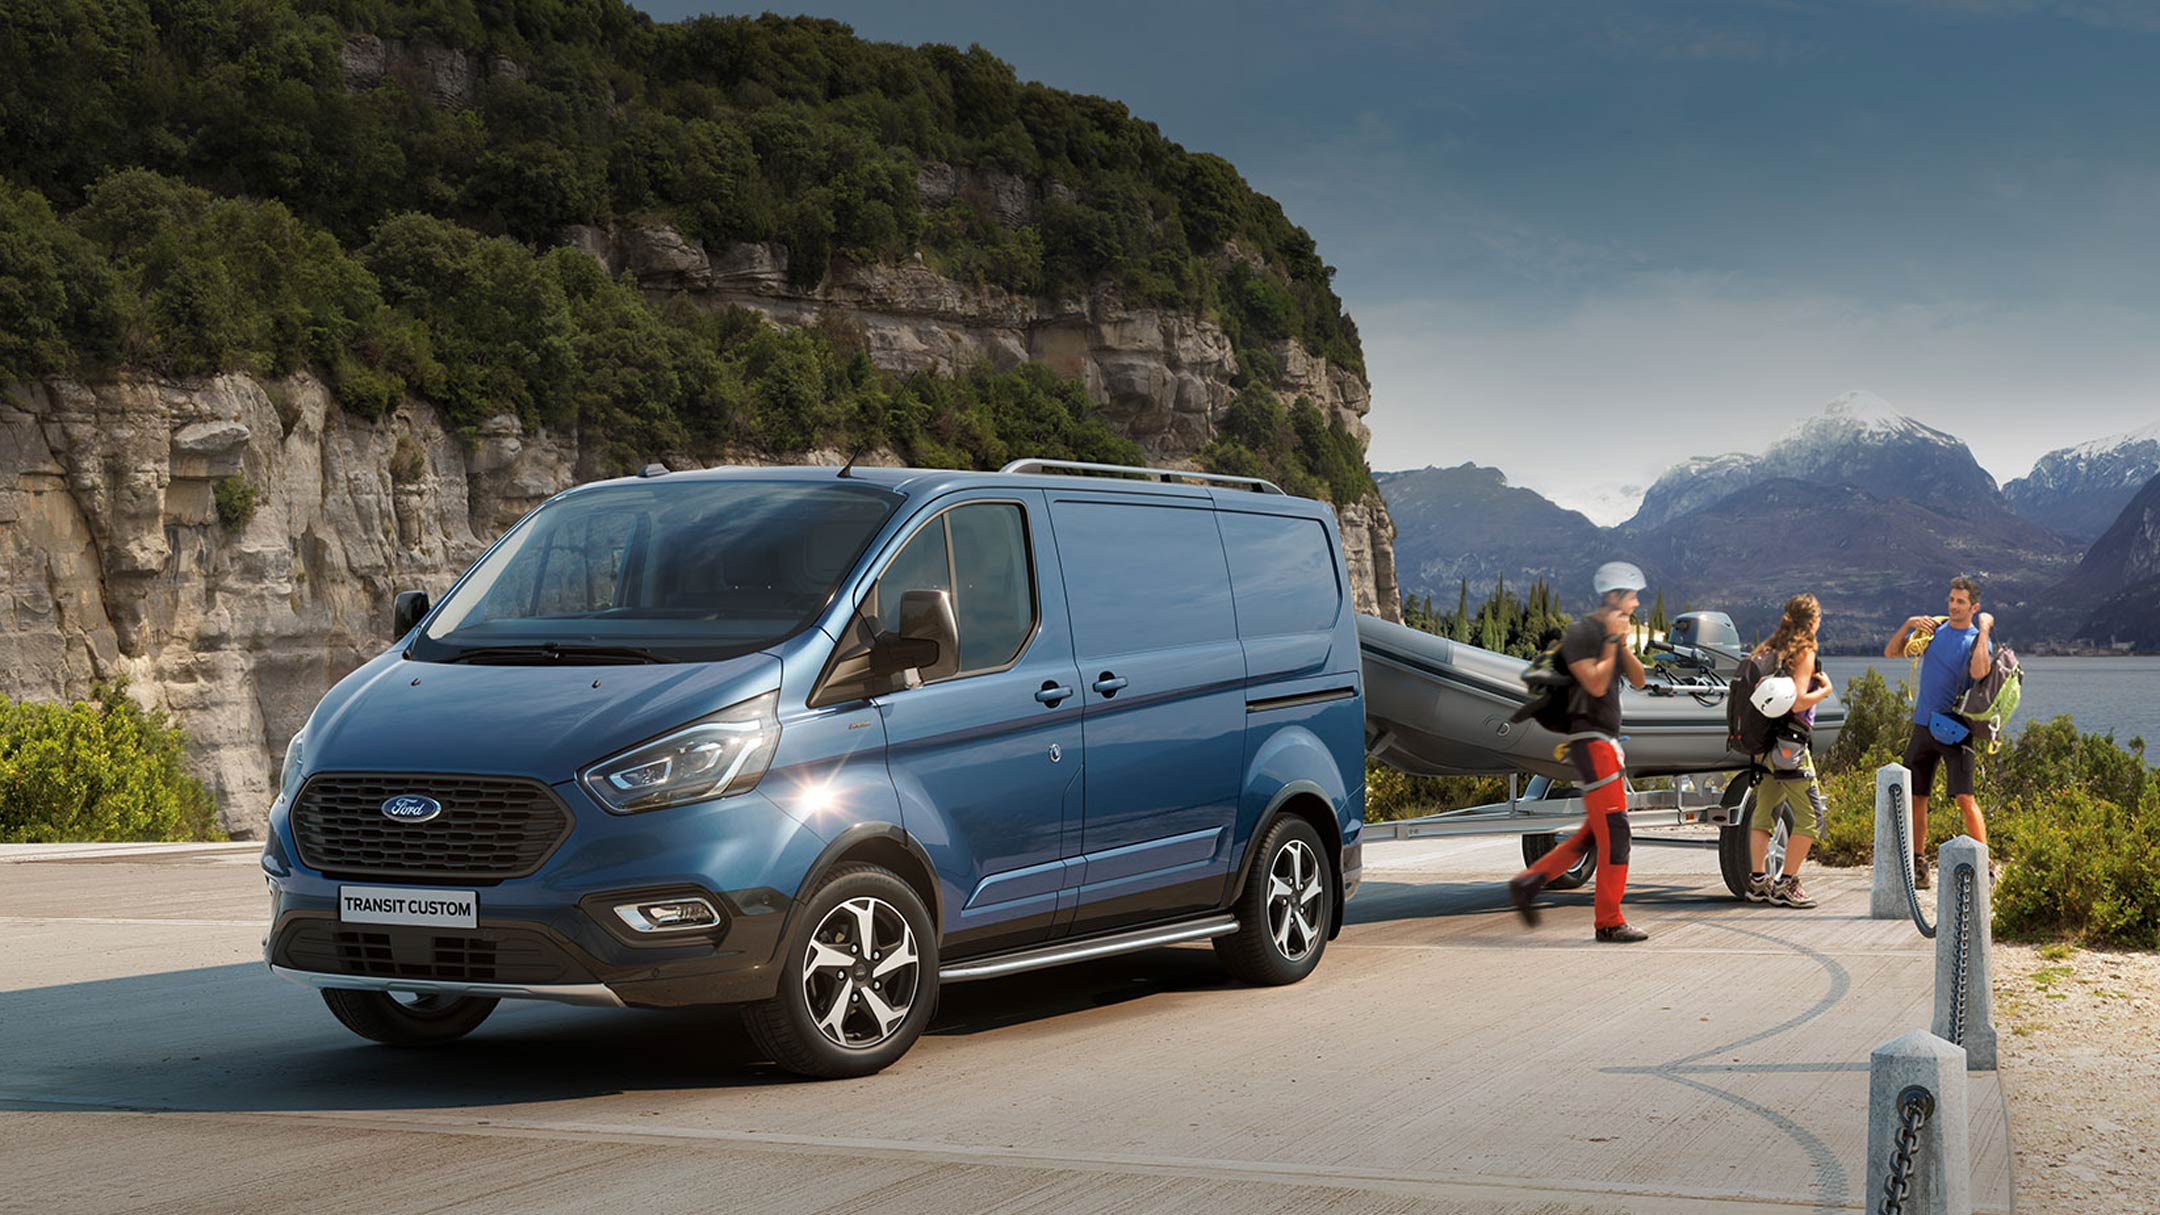 Ford Transit Custom Active with group of people